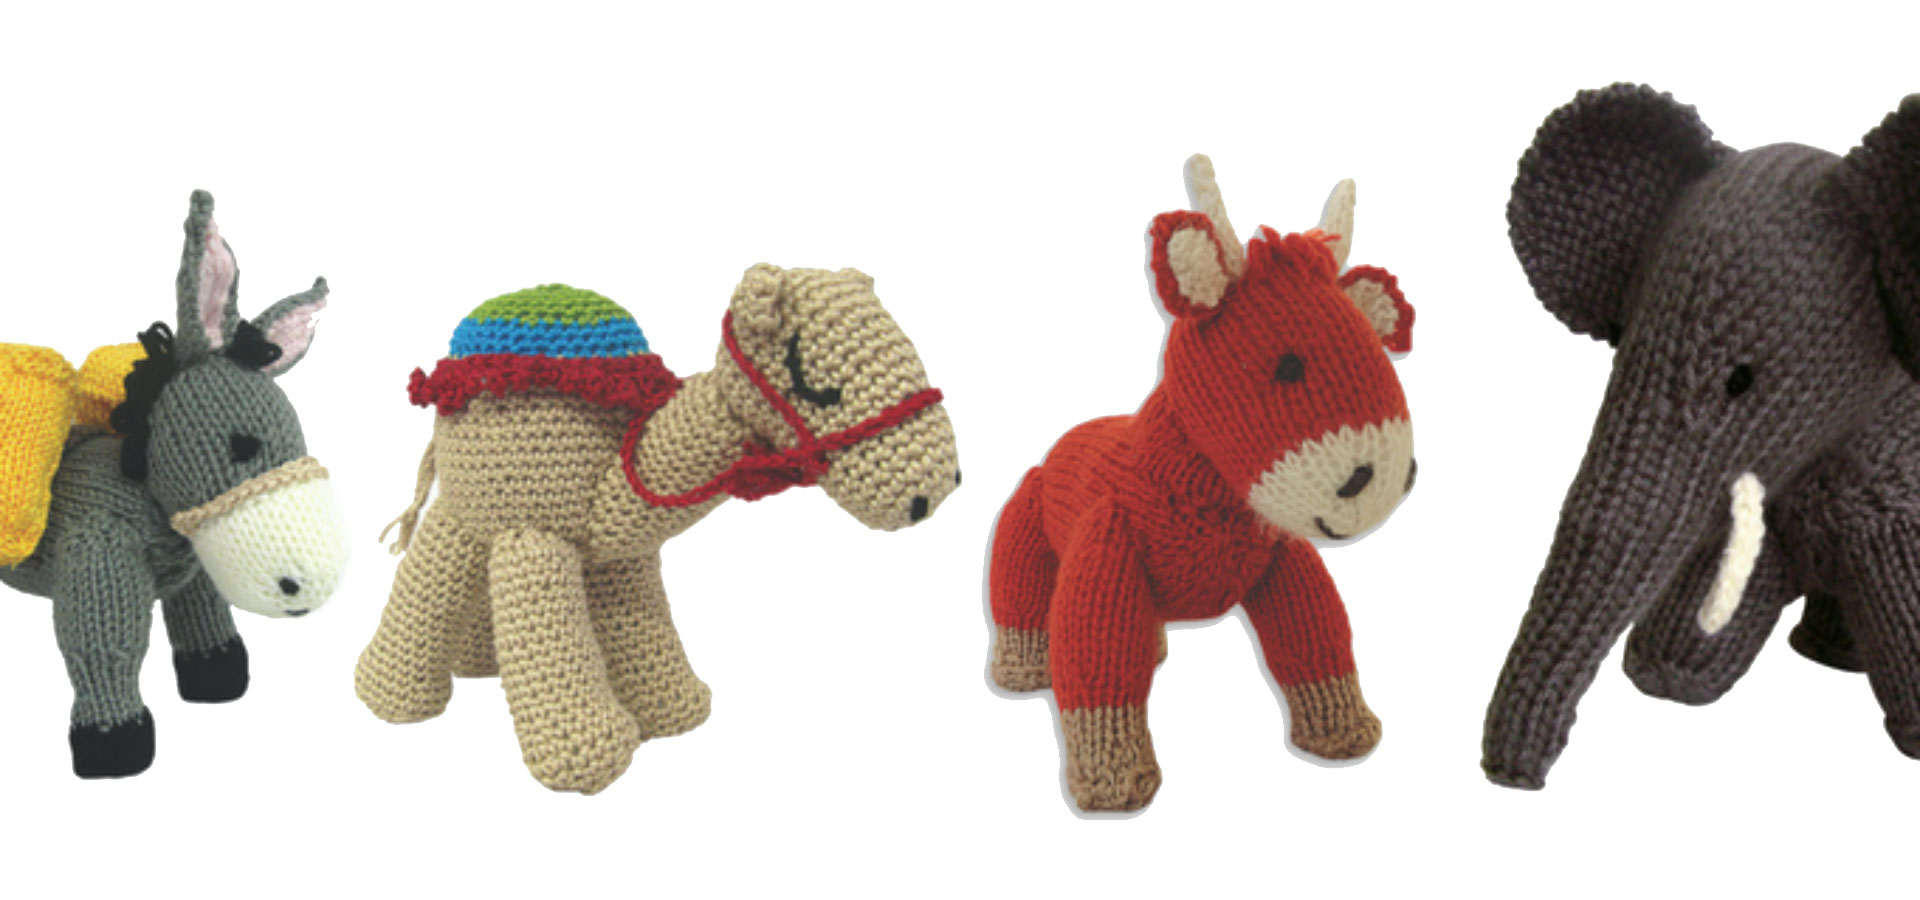 Animal knit toys on white background